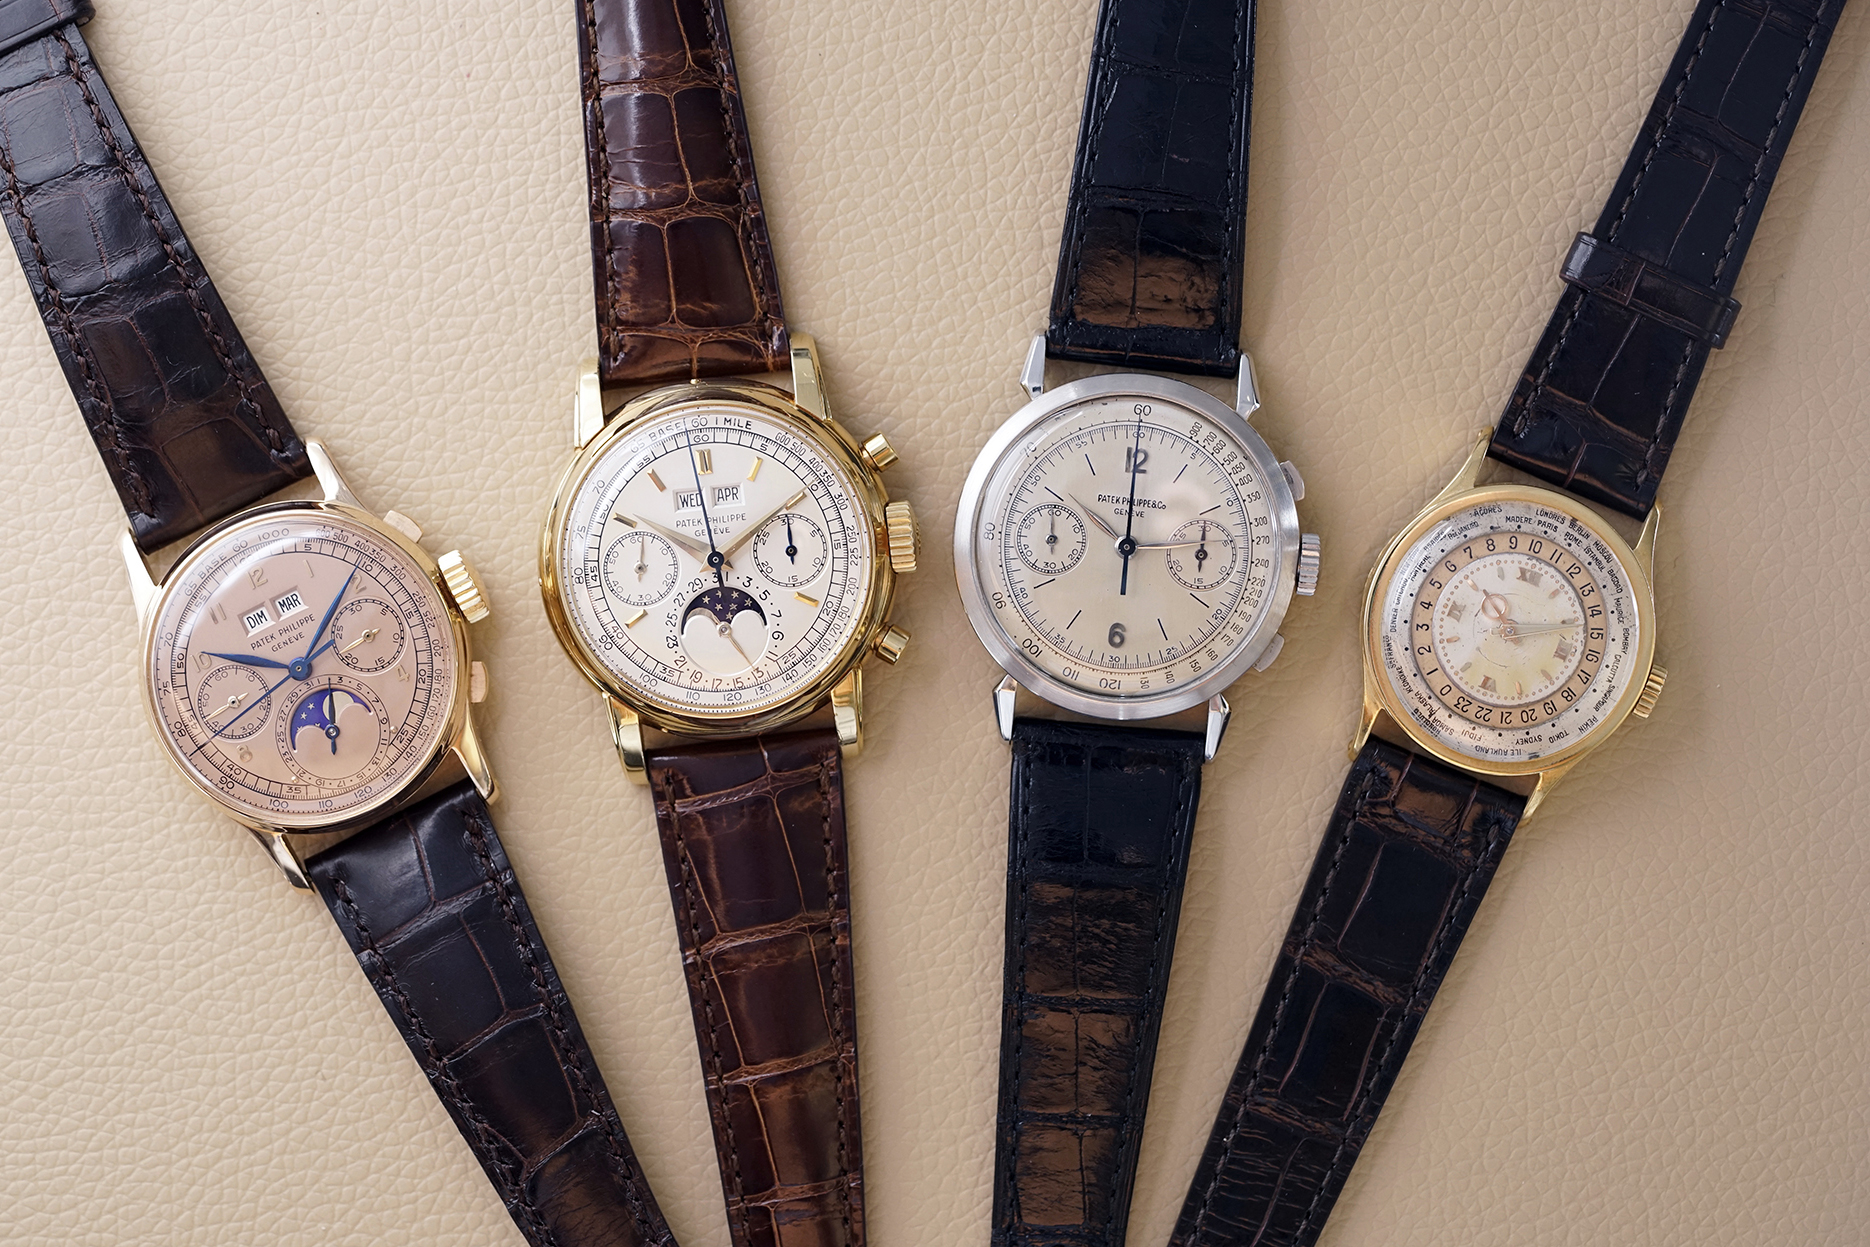 Jean-Claude Biver's rare watch collection is coming to London